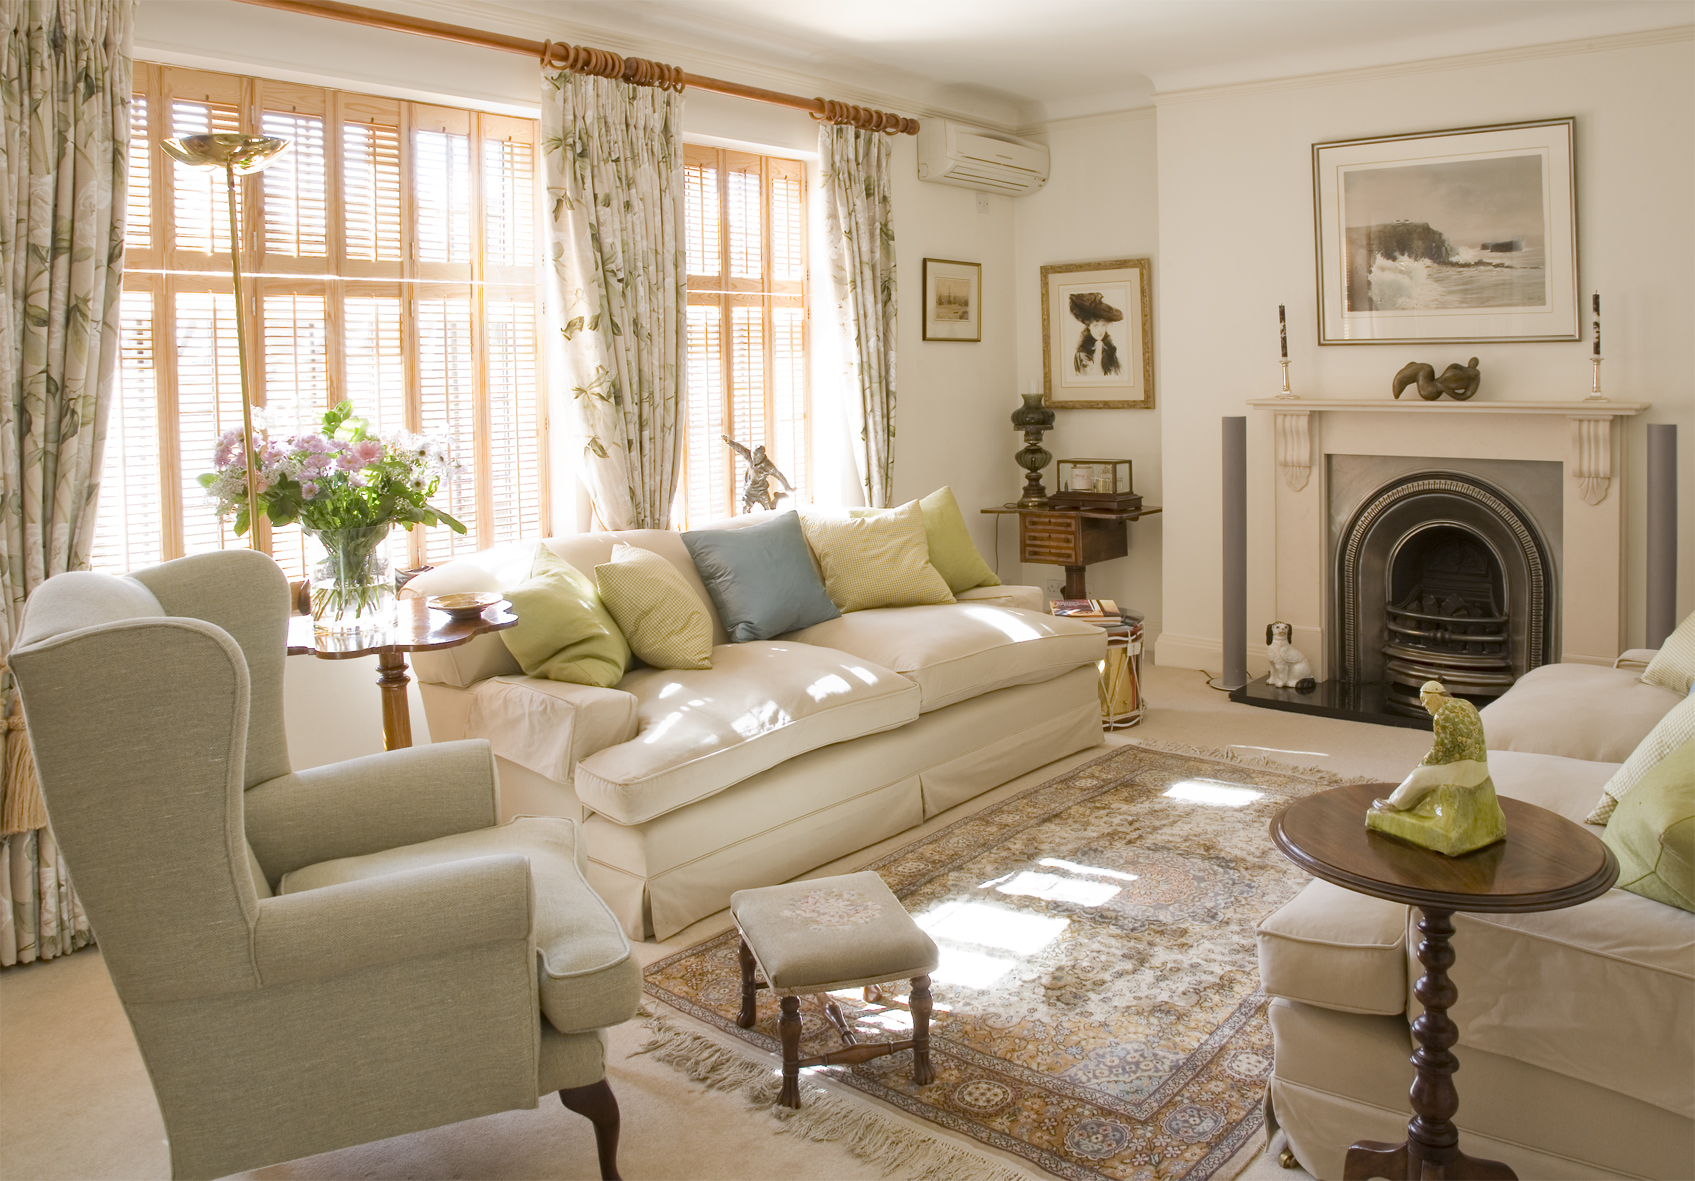 English country in the city gaff adrienne chinn 39 s for Modern english interior design